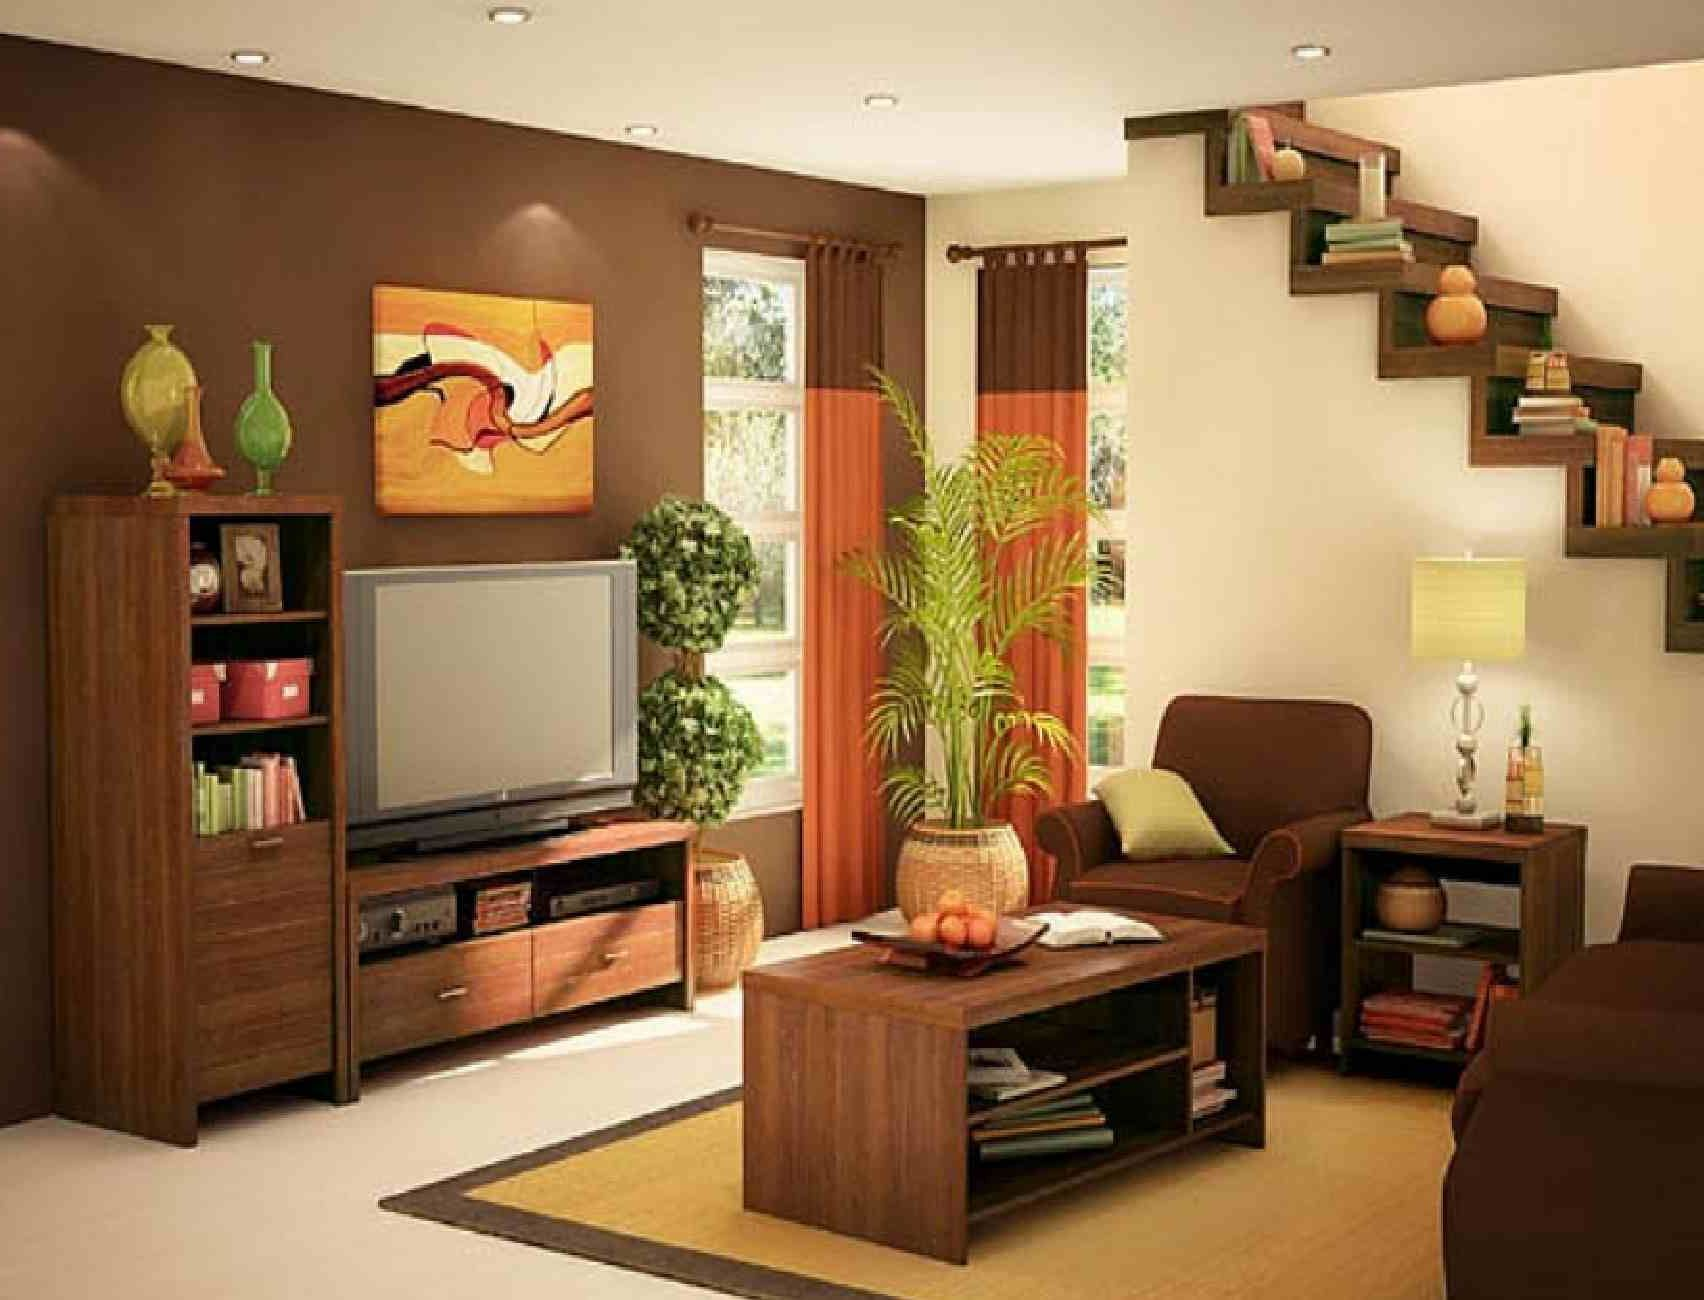 30 Minimalist Living Room Ideas Inspiration To Make The Most Of Your Space Small House Interior Small House Interior Design Simple Living Room Designs